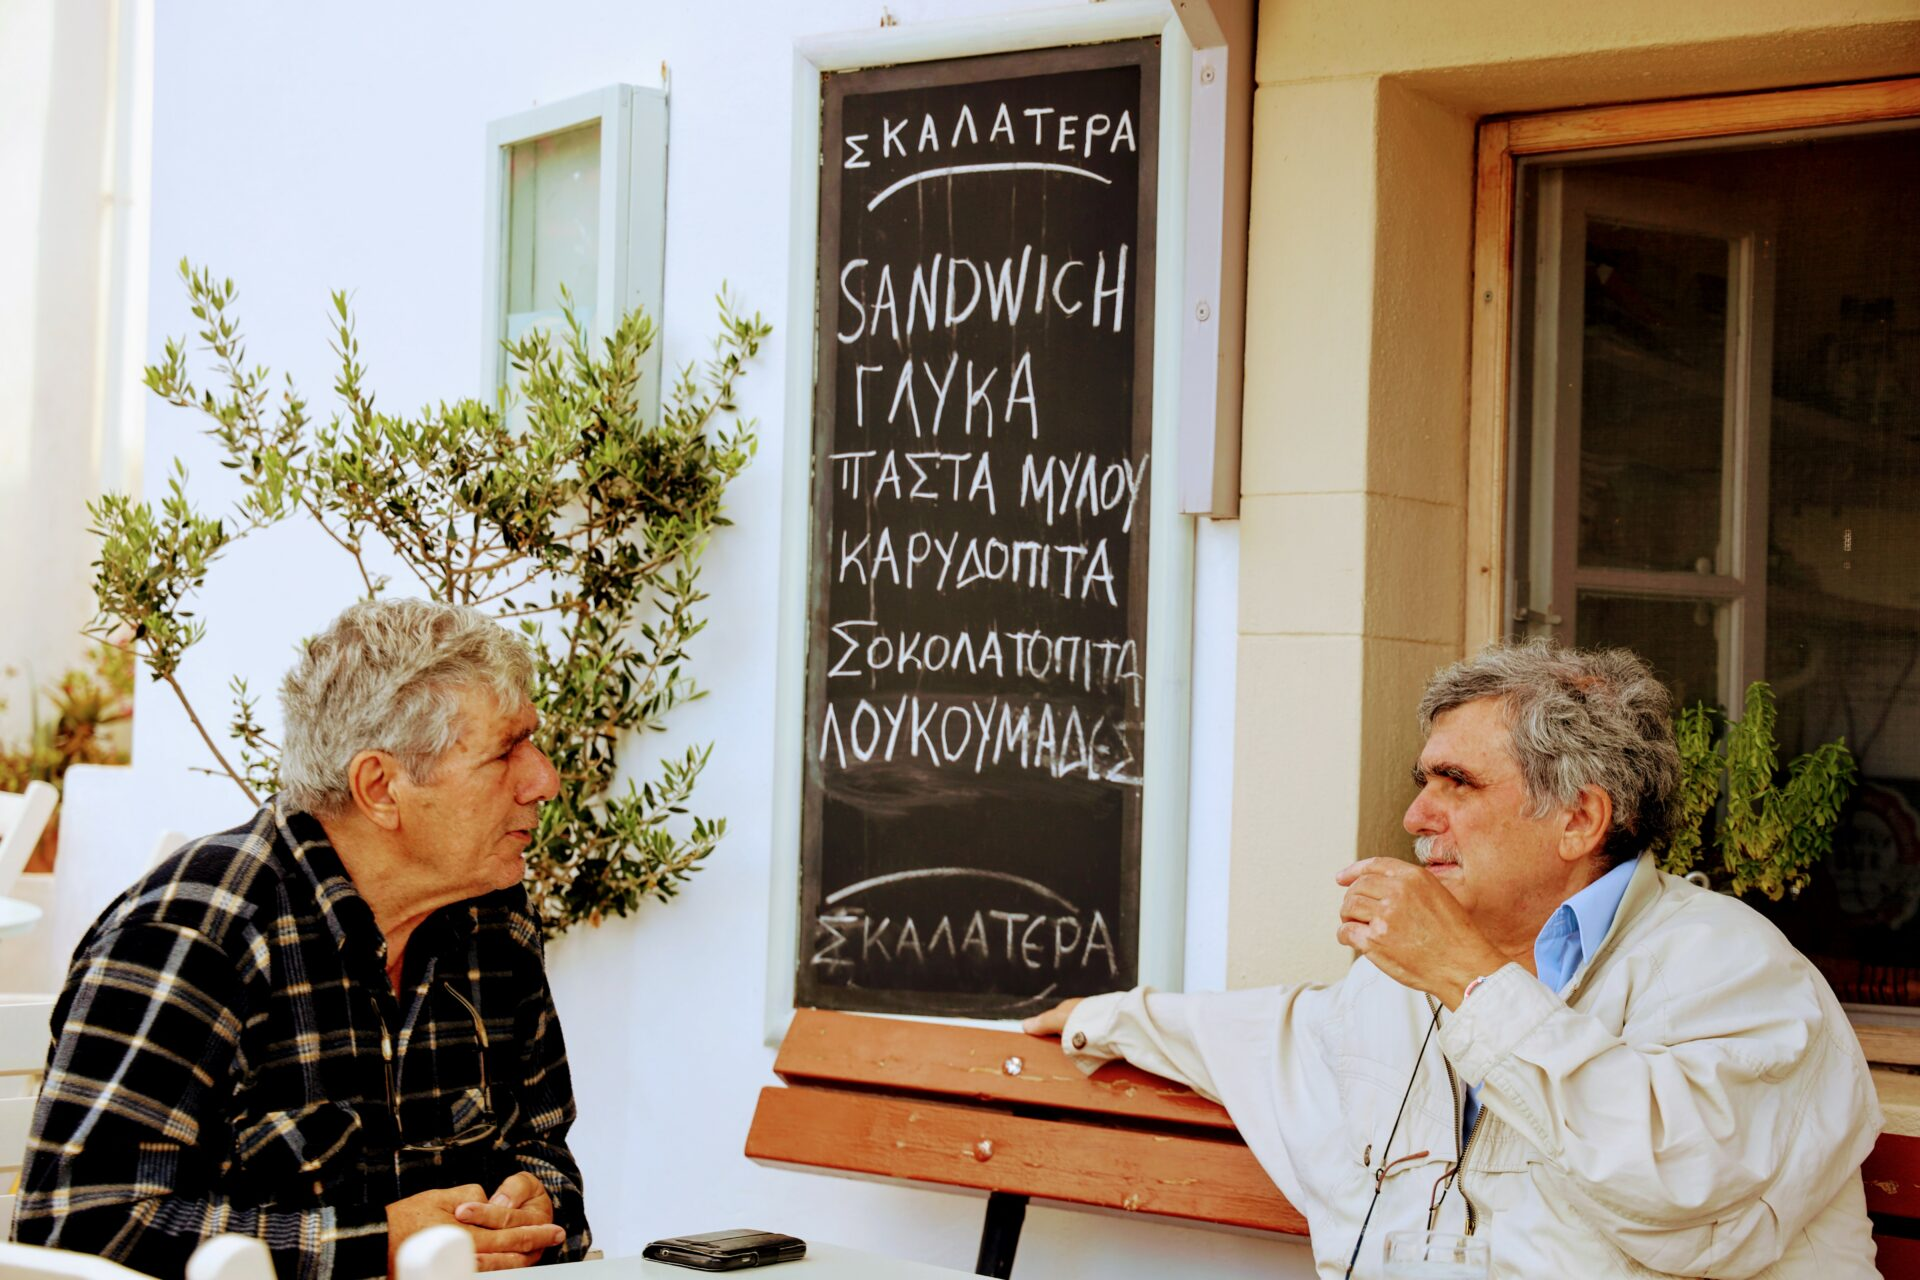 Locals chatting in Greece, Kthera island, 2 old greek men on a Saturday morning having a coffee